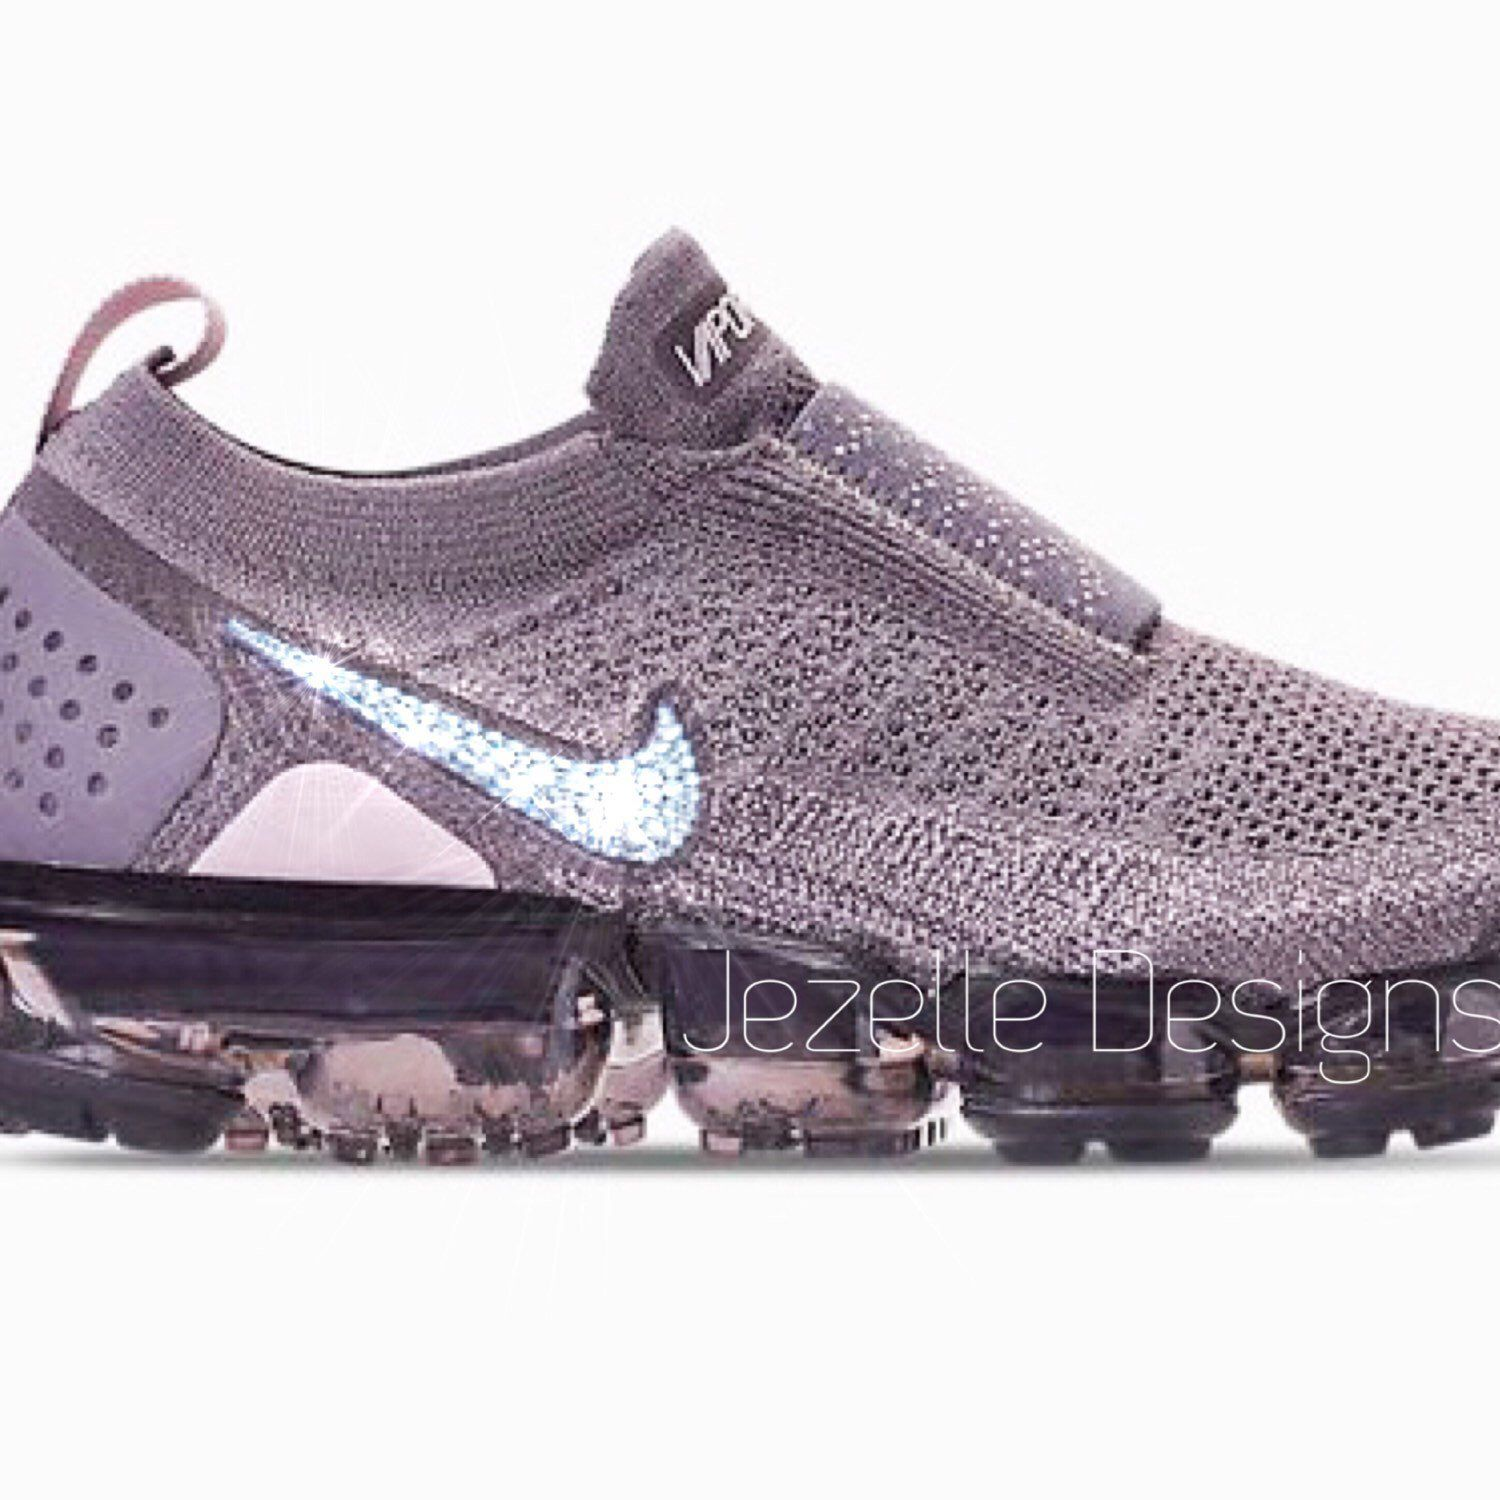 df328f70 New Swarovski Crystal Nike VaporMax MOC2 by Jezelle Designs! 💎 Hurry! ⏰  Limited Release! ⏰